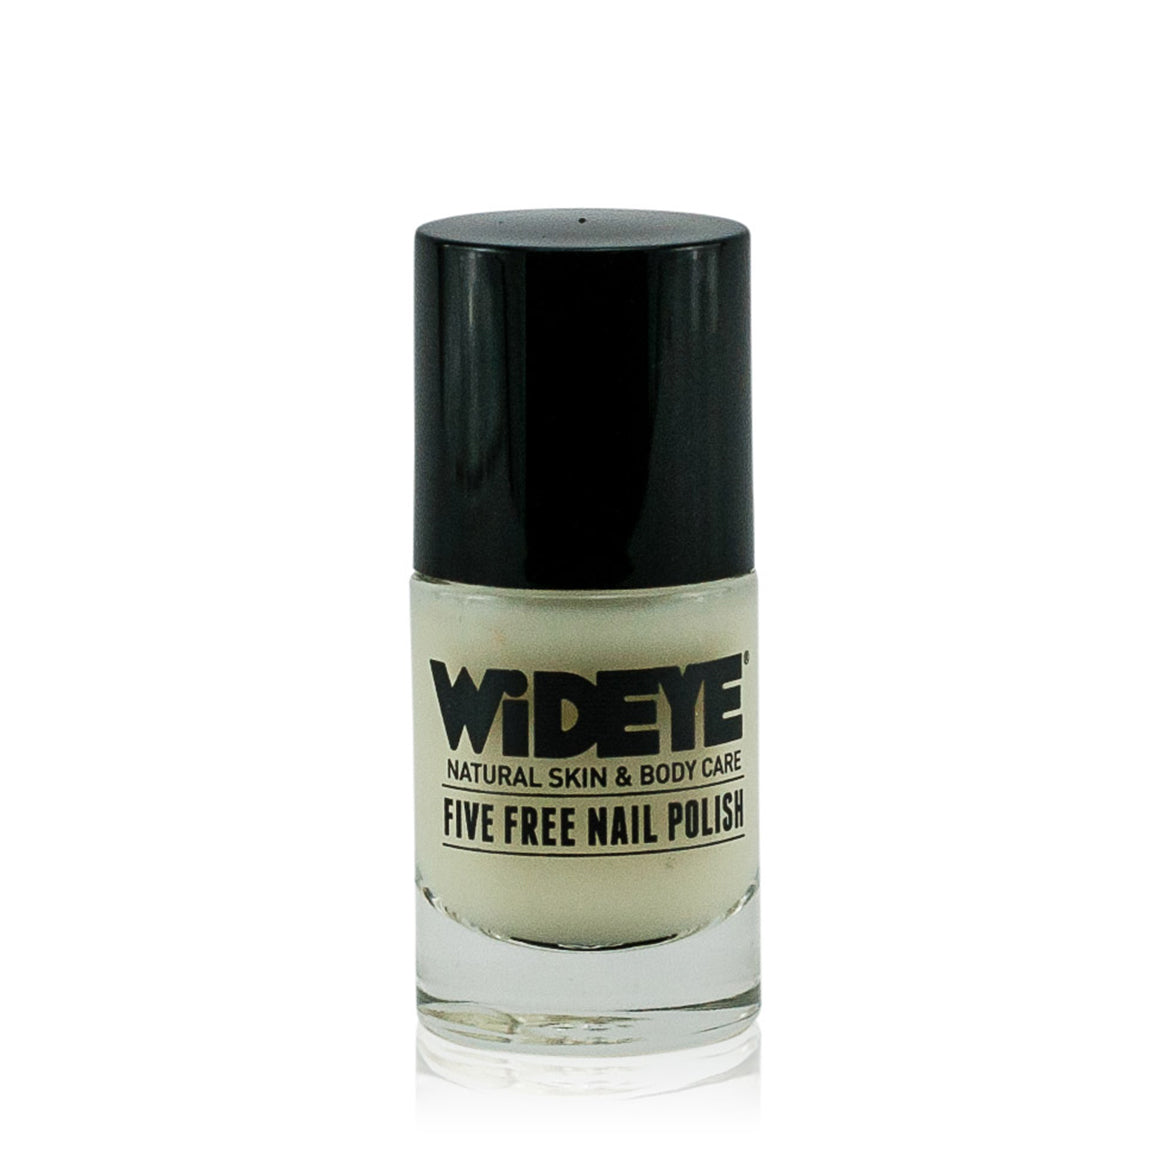 Protective base coat nail varnish in glass bottle by WiDEYE